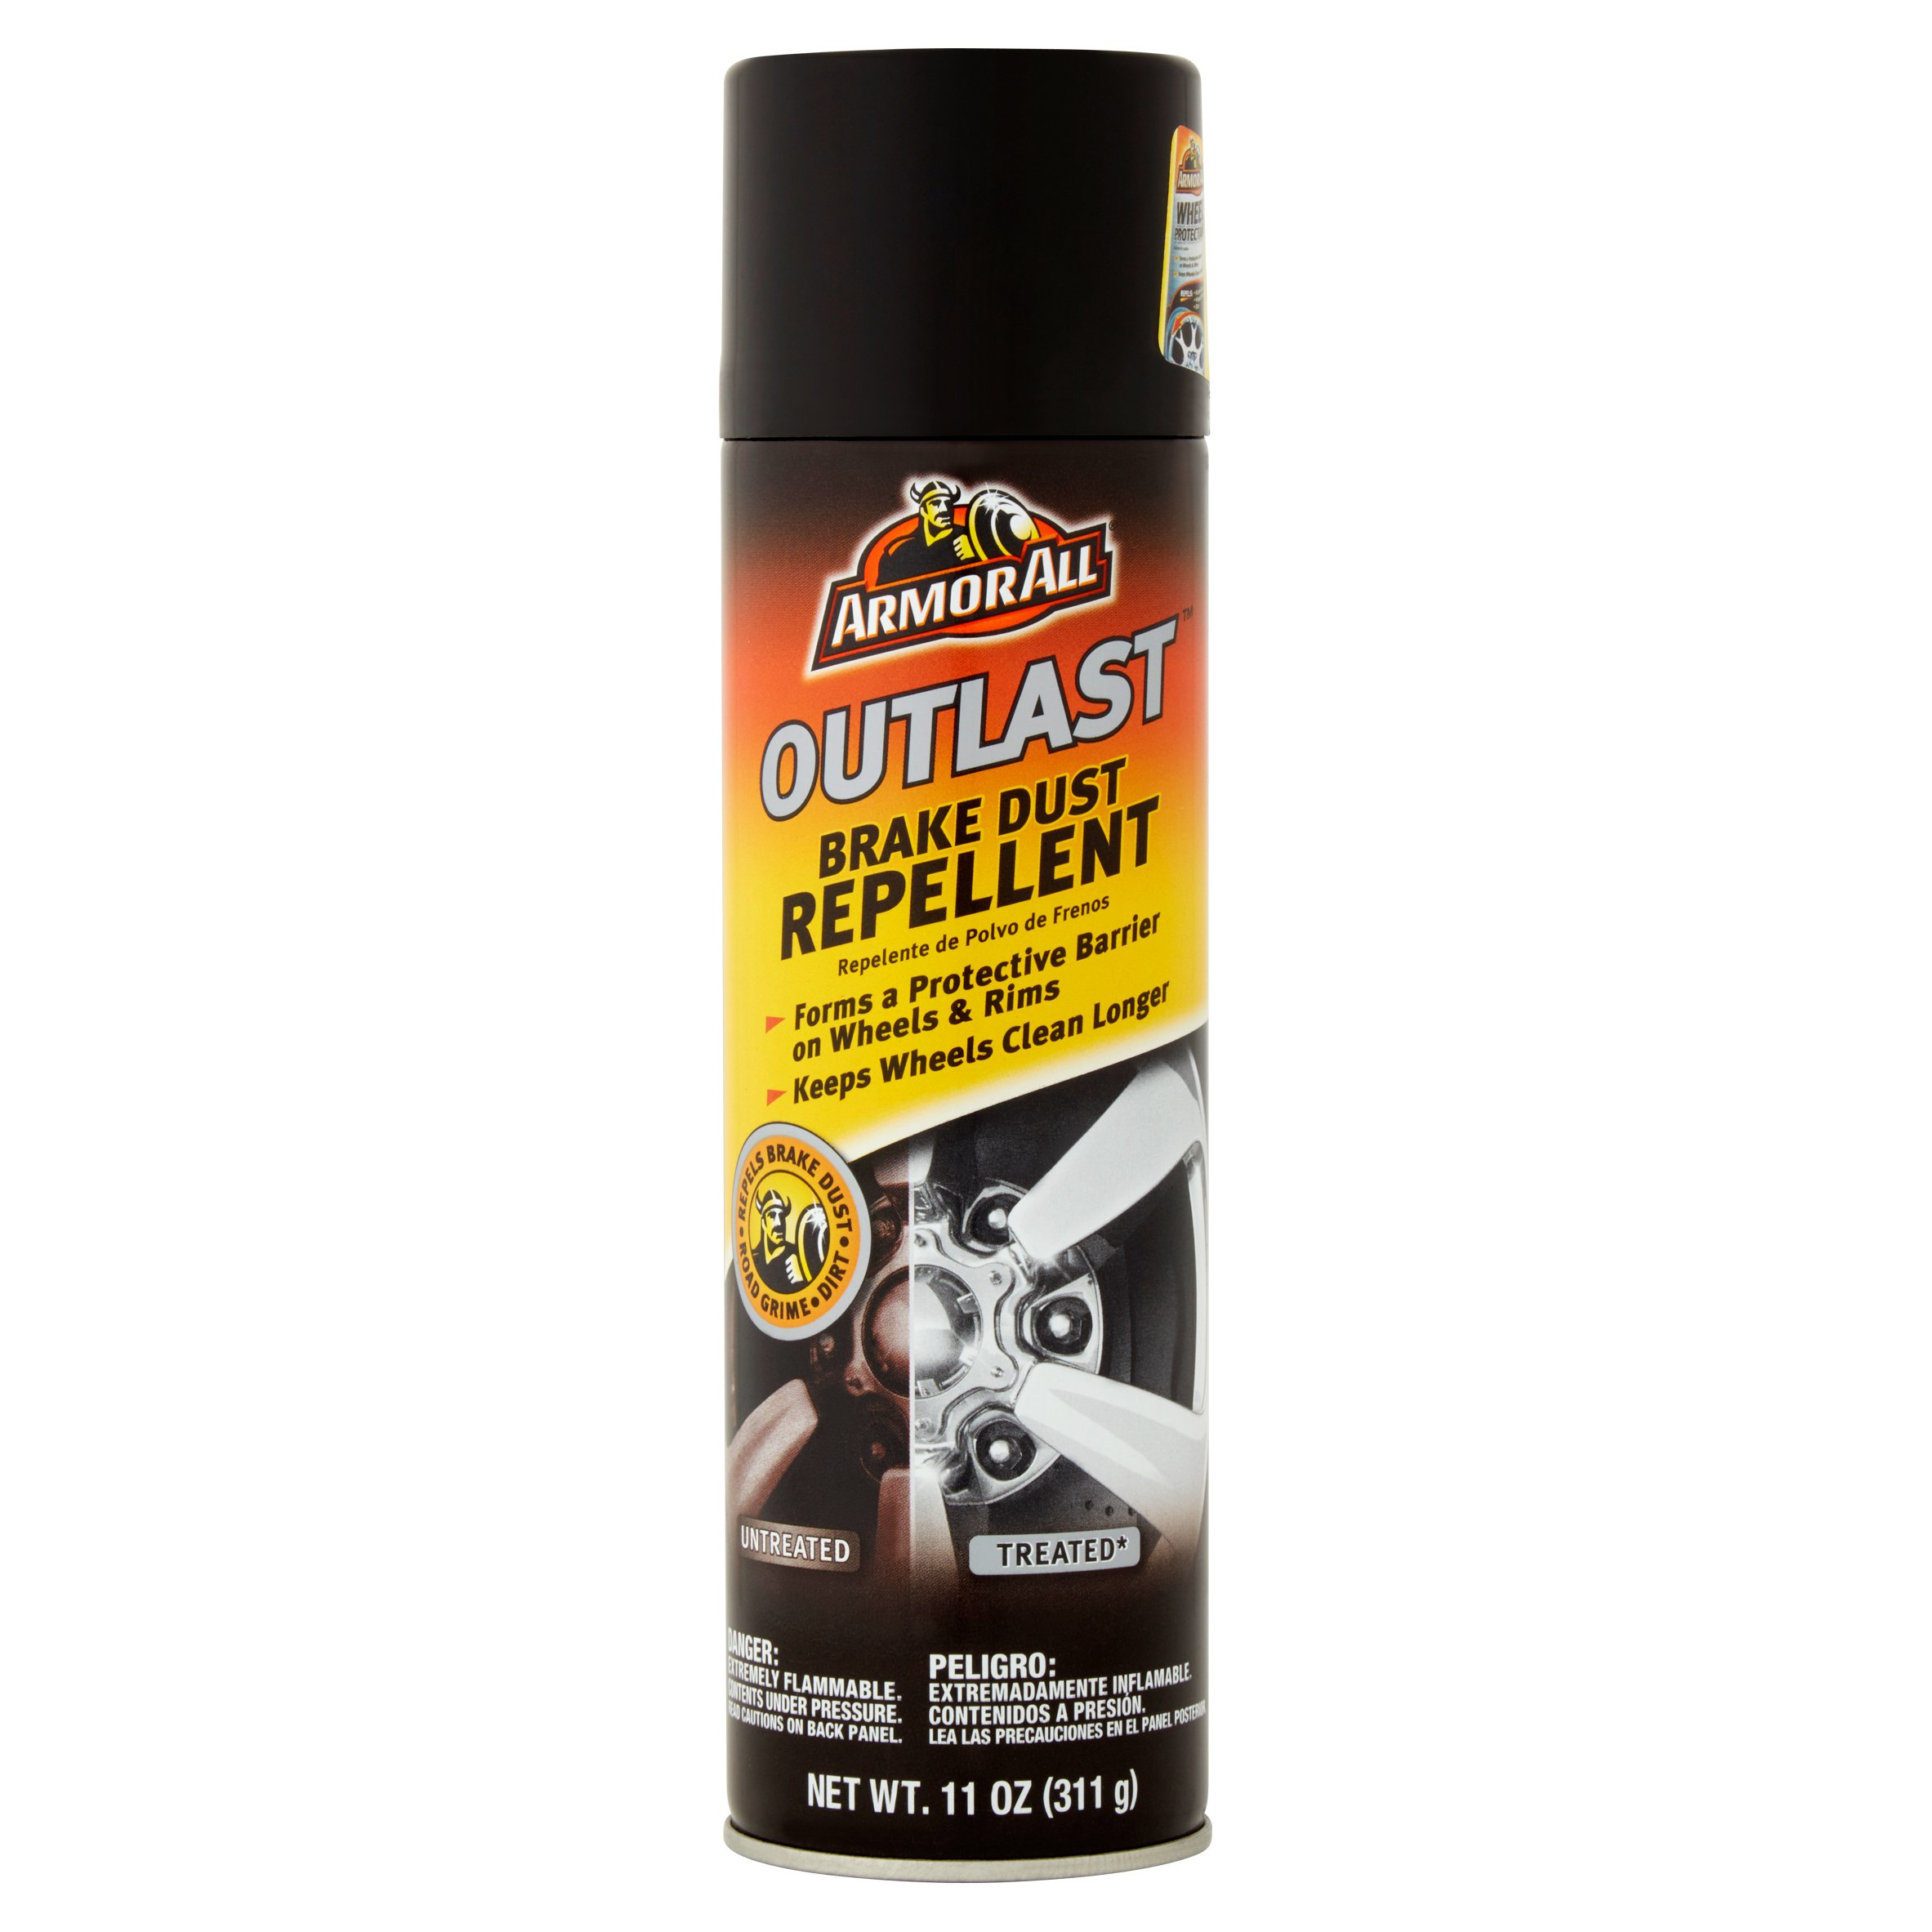 ArmorAll Outlast Brake Dust Repellent, 11 oz